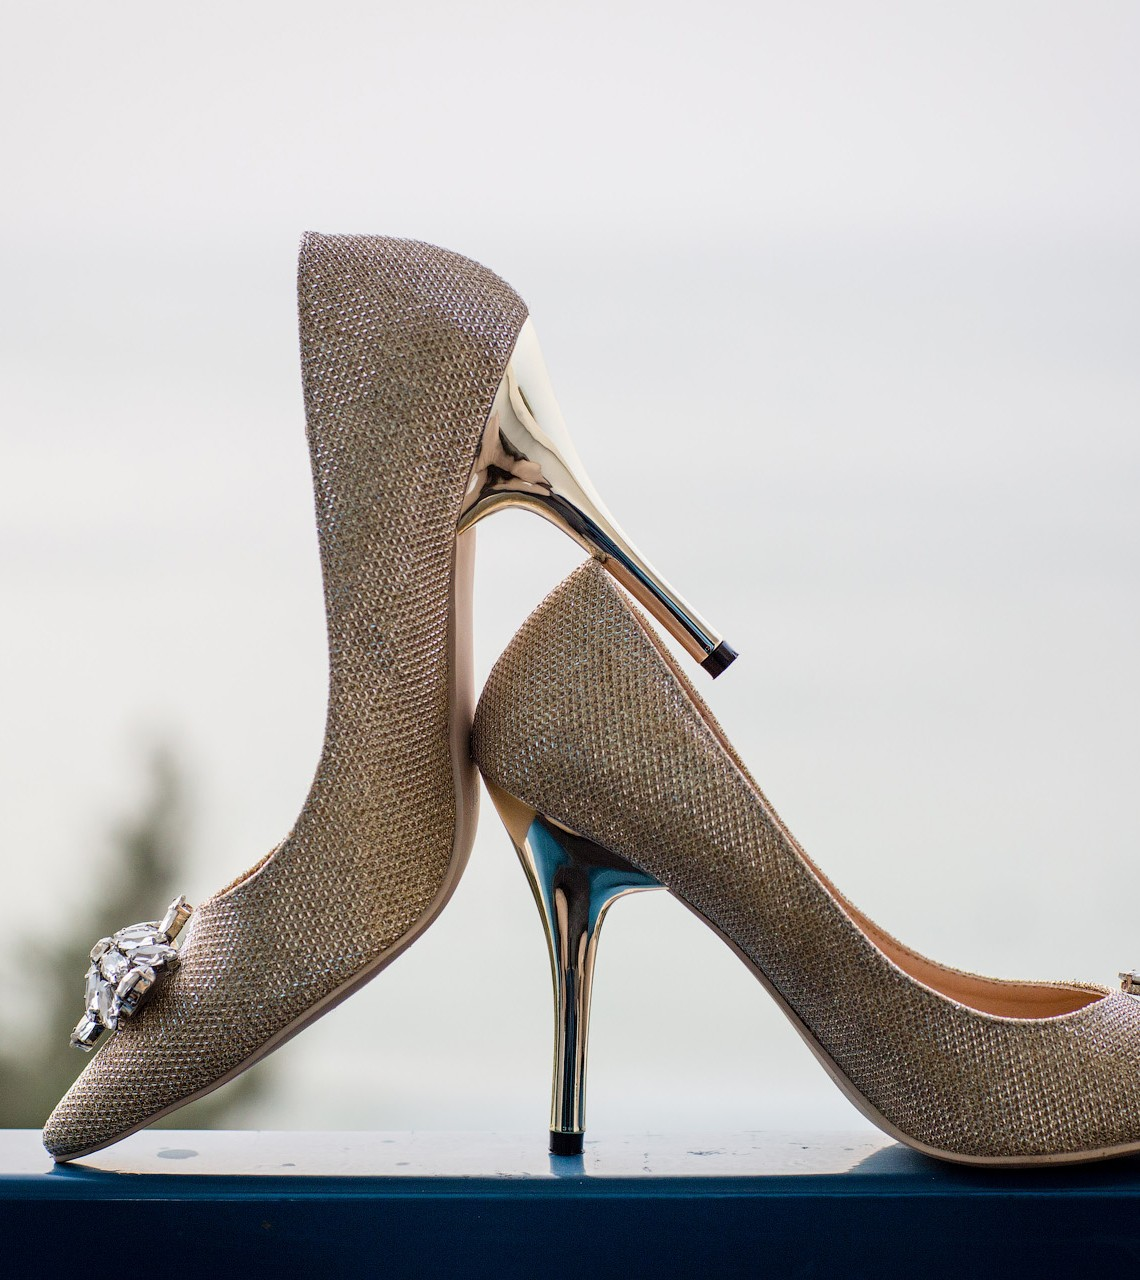 Getting cold feet? Your dream wedding shoes.